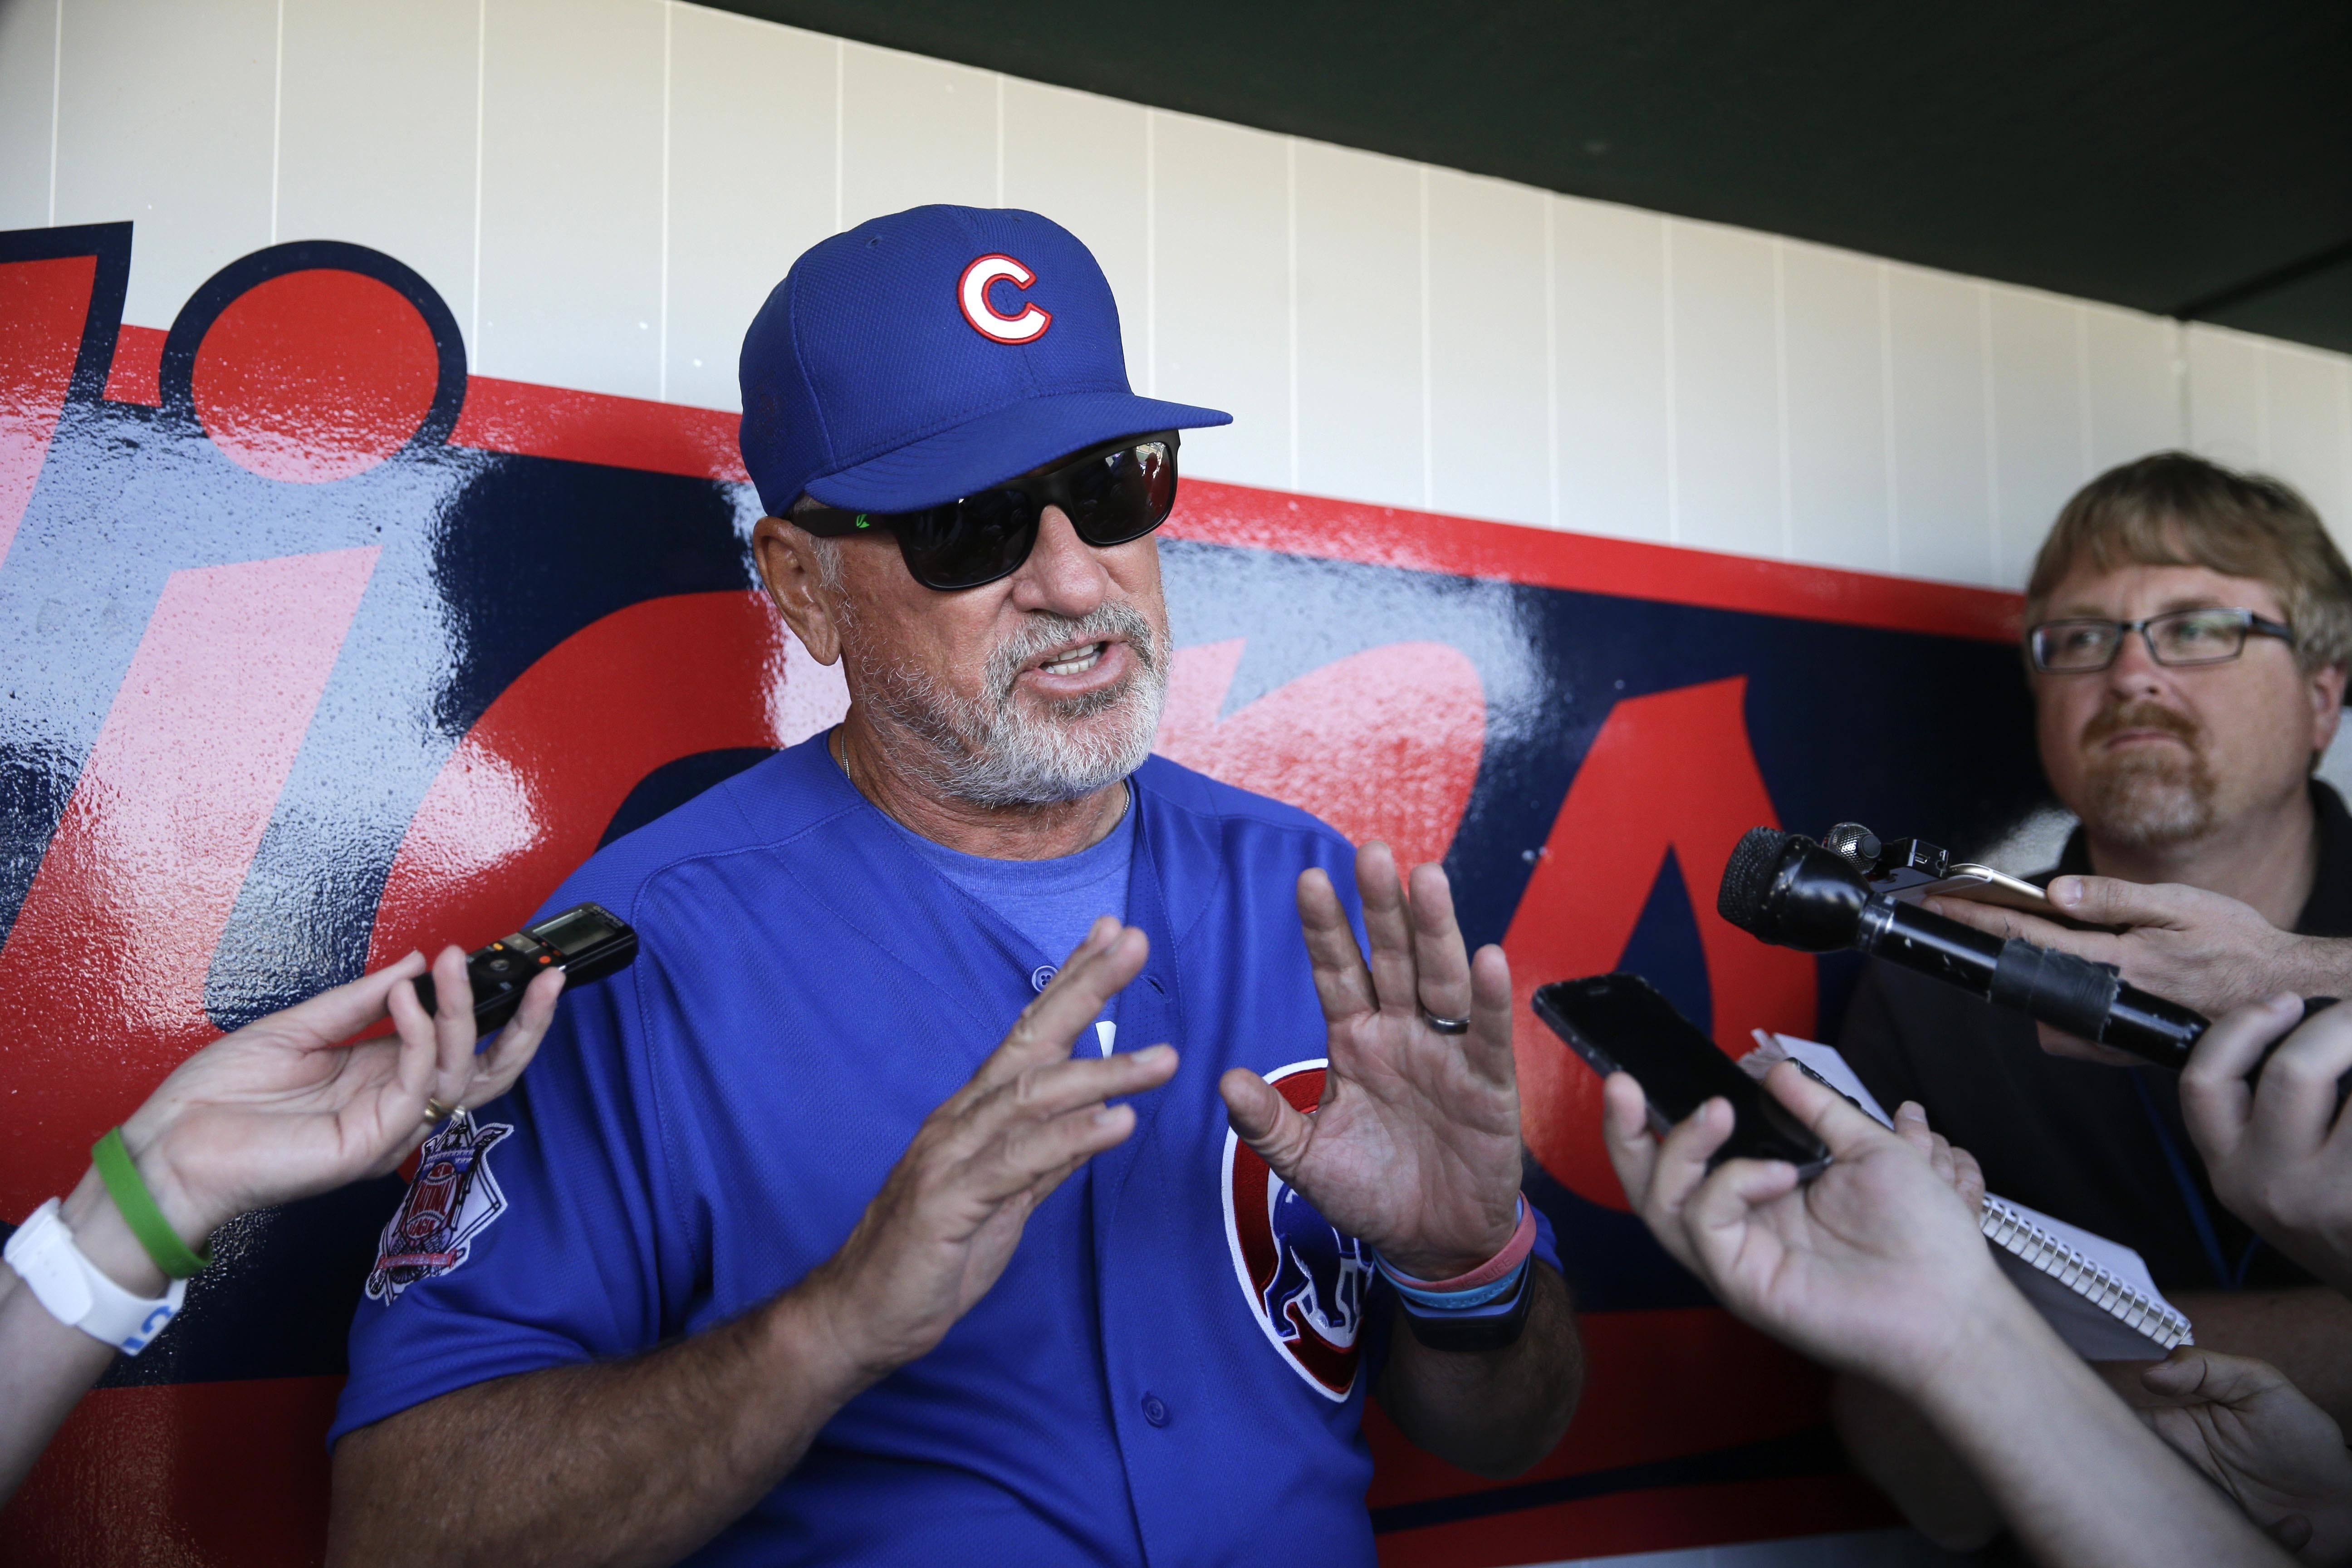 FILE - In this March 22, 2016 file photo, Chicago Cubs manager Joe Maddon smiles while talking to reporters before a spring training baseball game in Goodyear, Ariz. The Cubs open at the Los Angeles Angels on Monday night April 4, 2016, eyeing another big